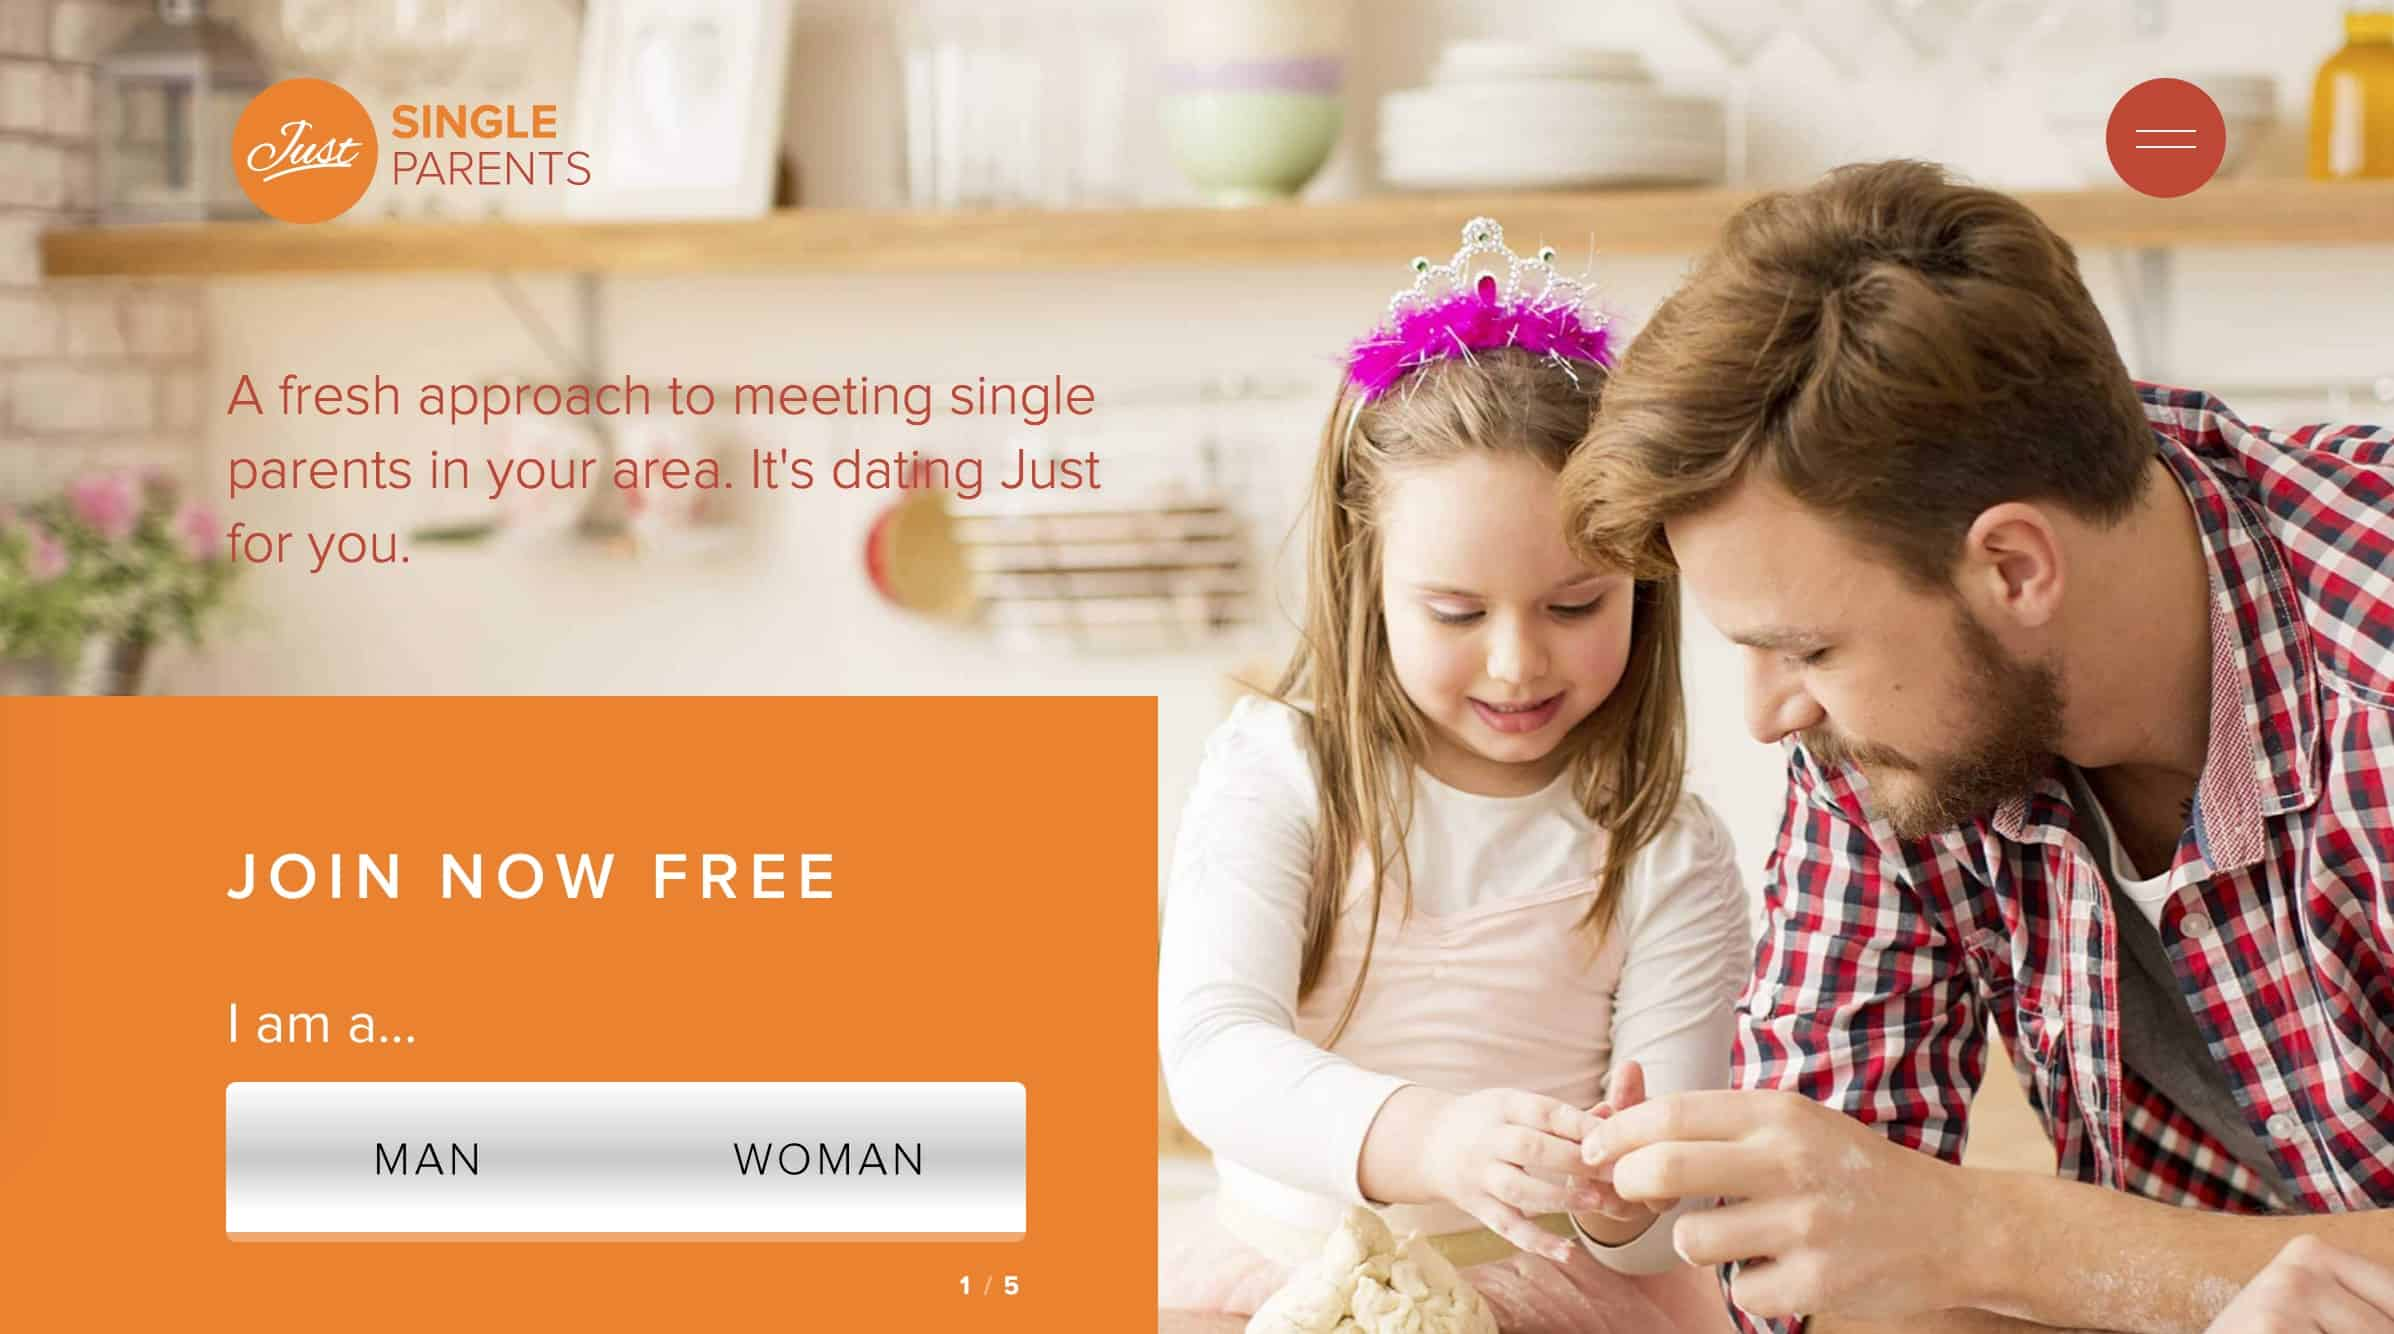 dating site for single parents free Dating for parents can be tough and it's hard getting back into the single parent dating game join just single parents today and browse our members for free.